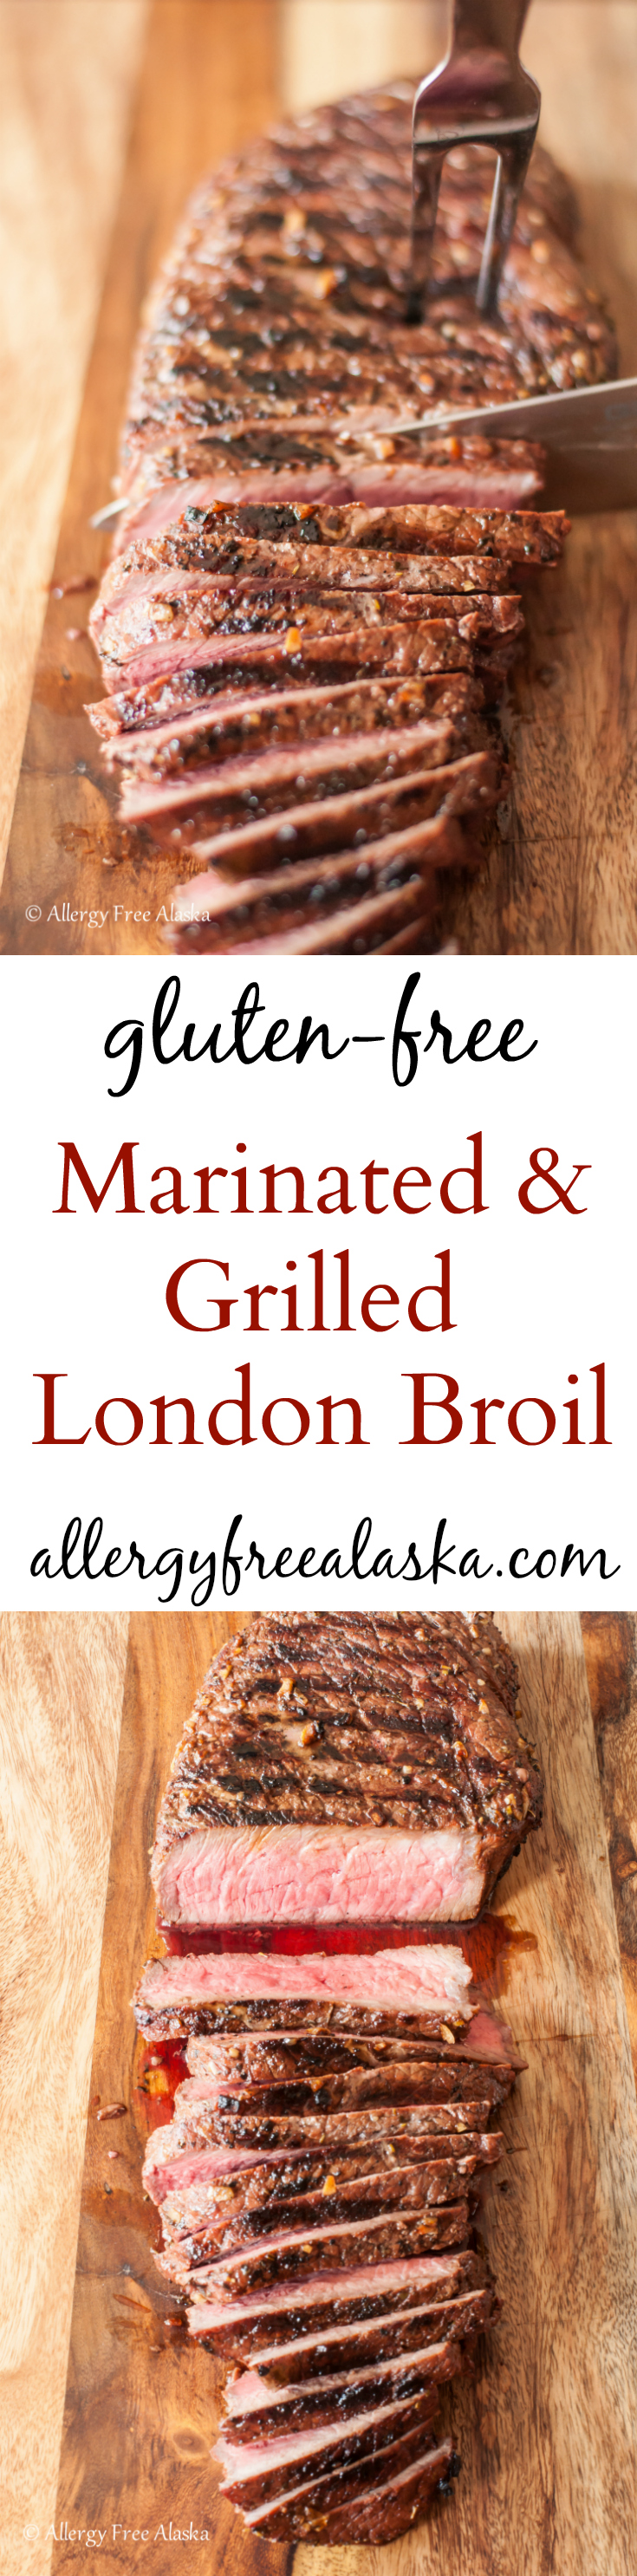 Gluten-Free Marinated & Grilled London Broil Recipe from Allergy Free Alaska